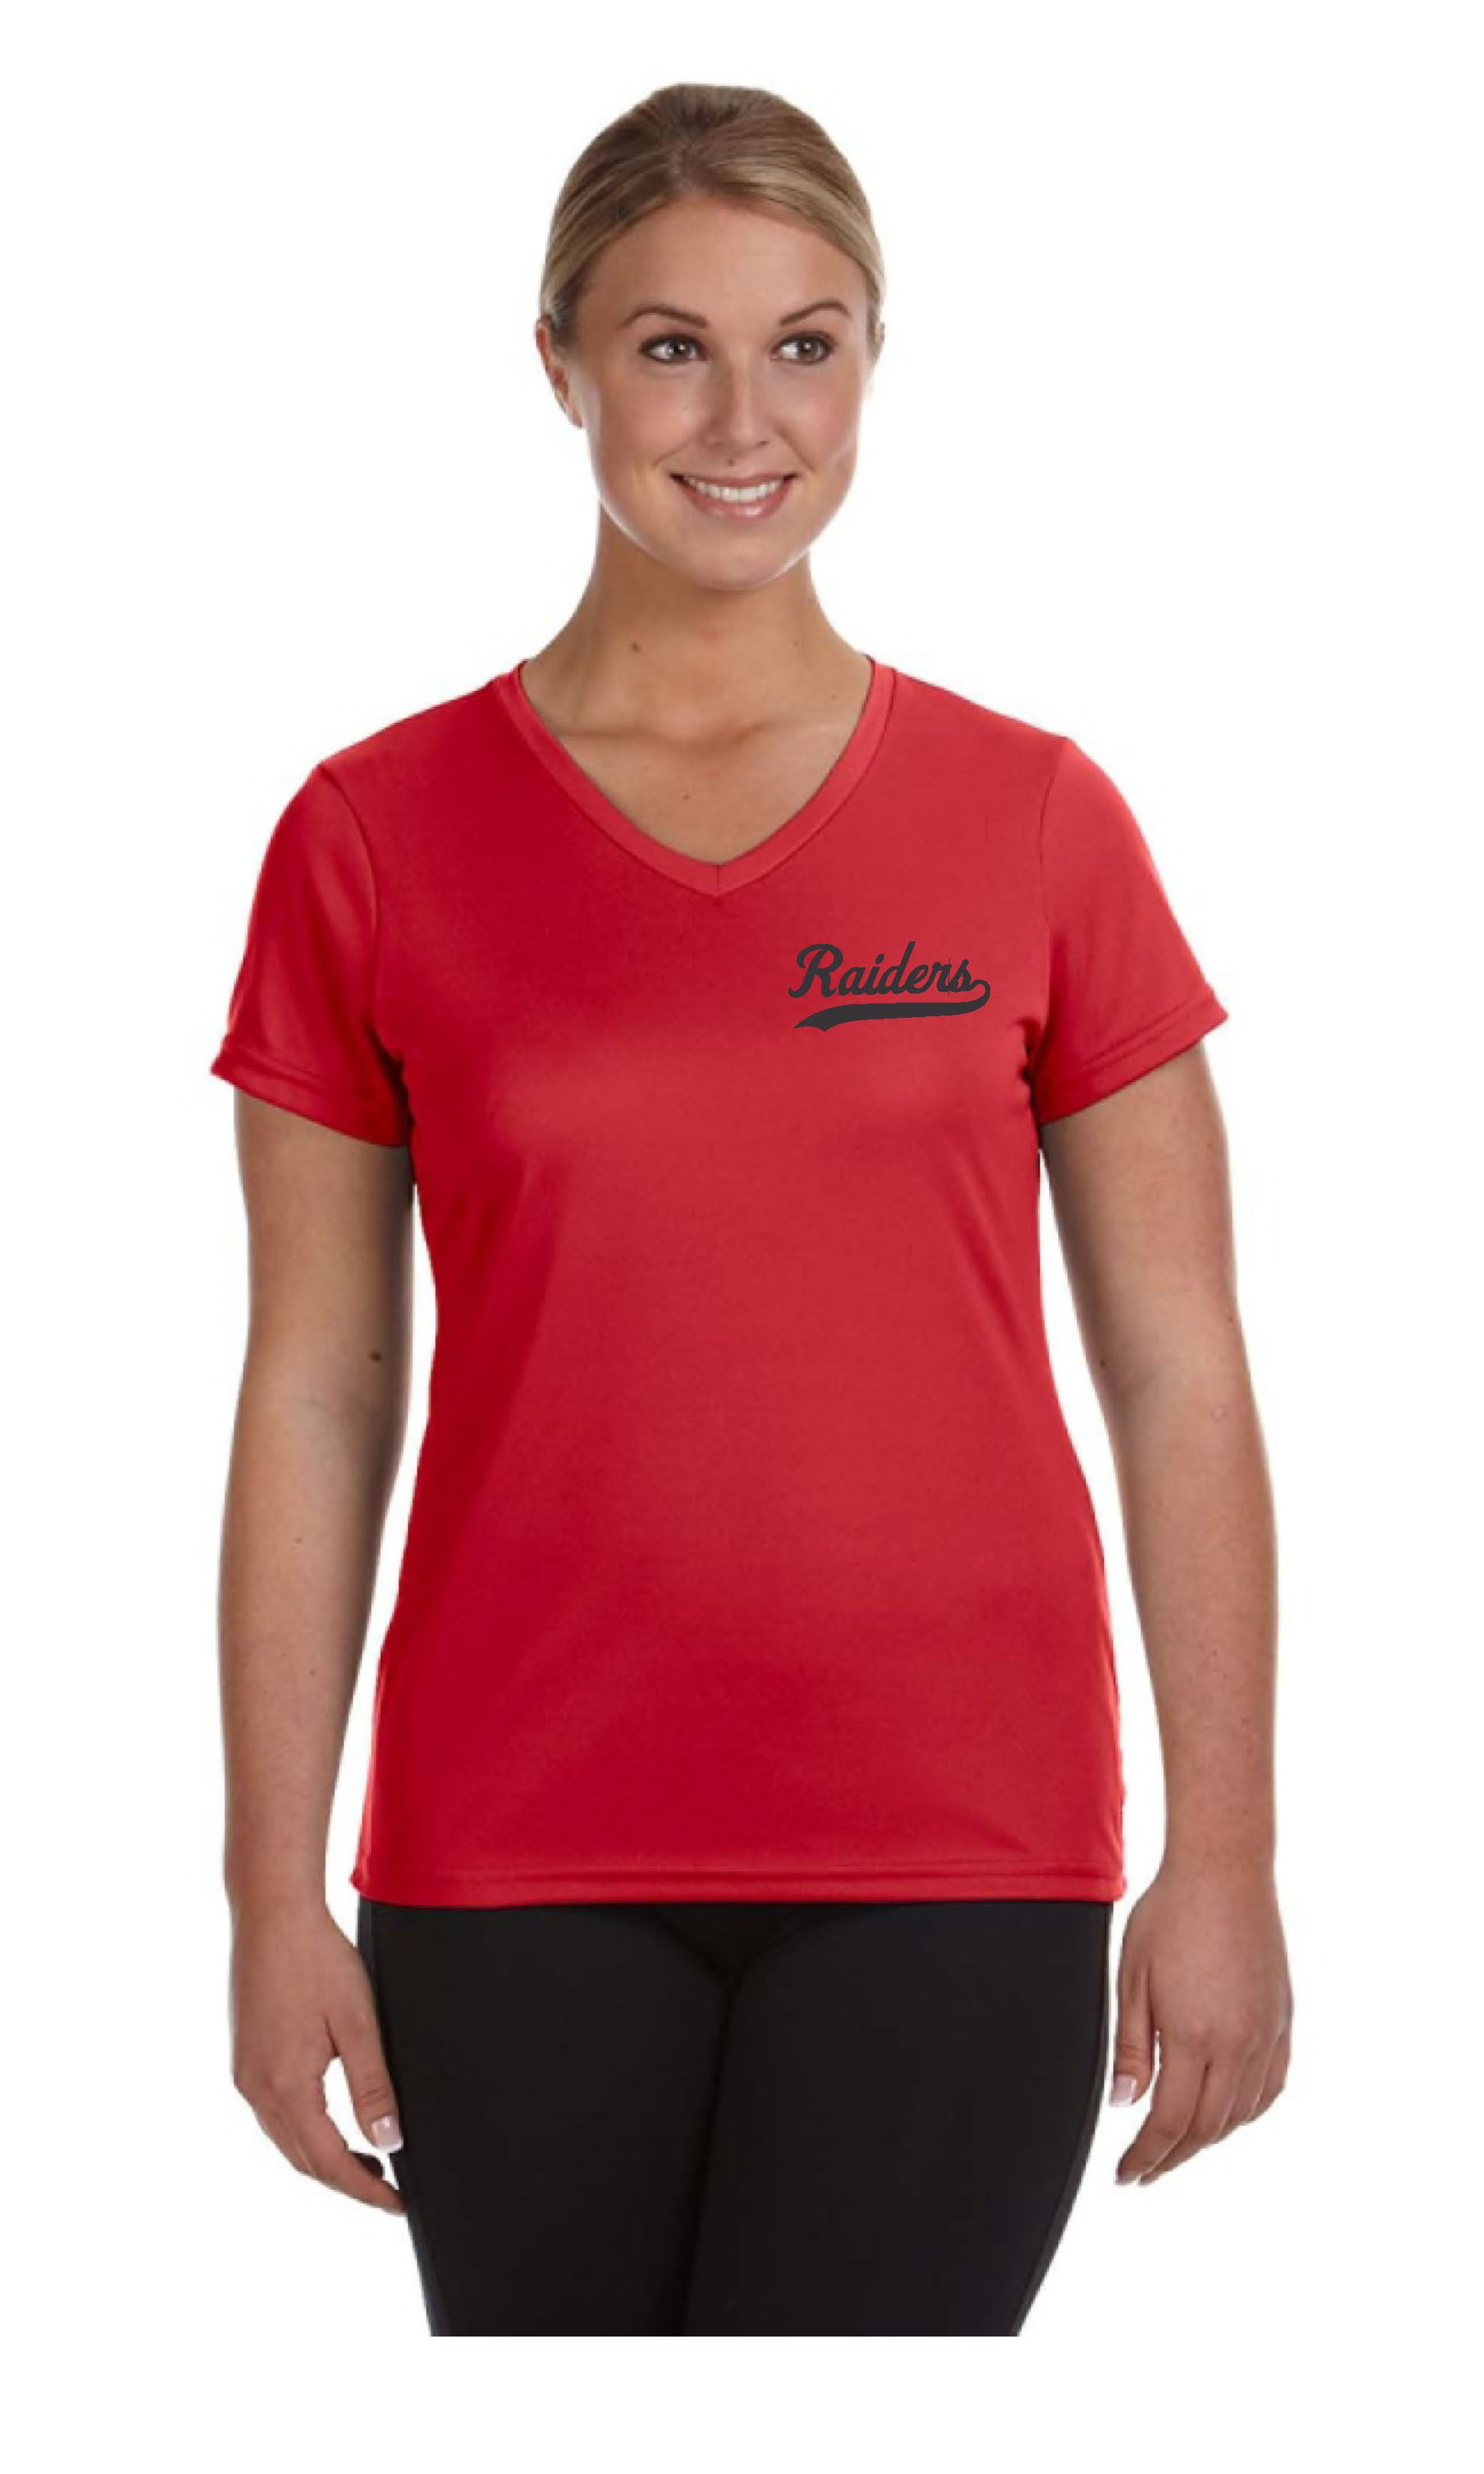 Raiders Ladies Dry Fit V Neck Tees